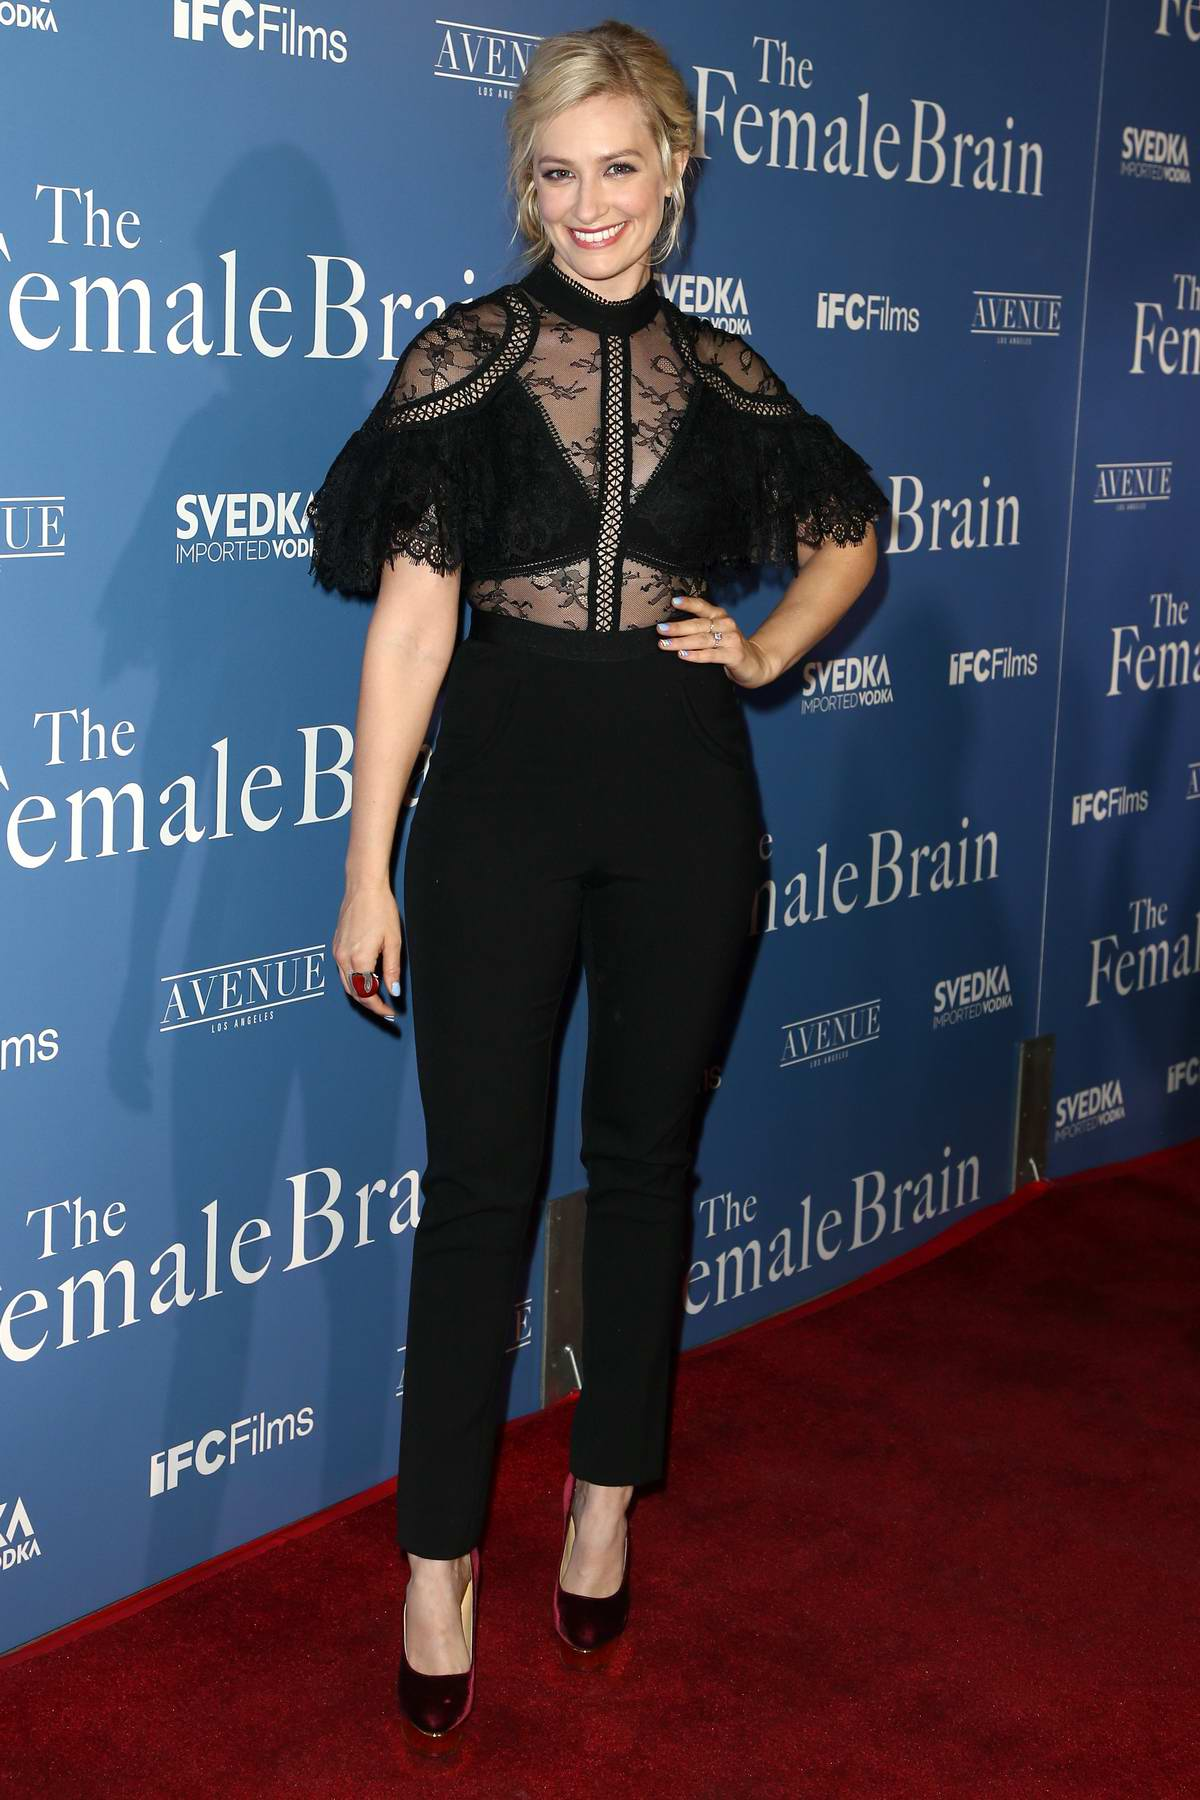 Beth Behrs at 'The Female Brain' premiere held at Arclight Theatre in Hollywood, Los Angeles